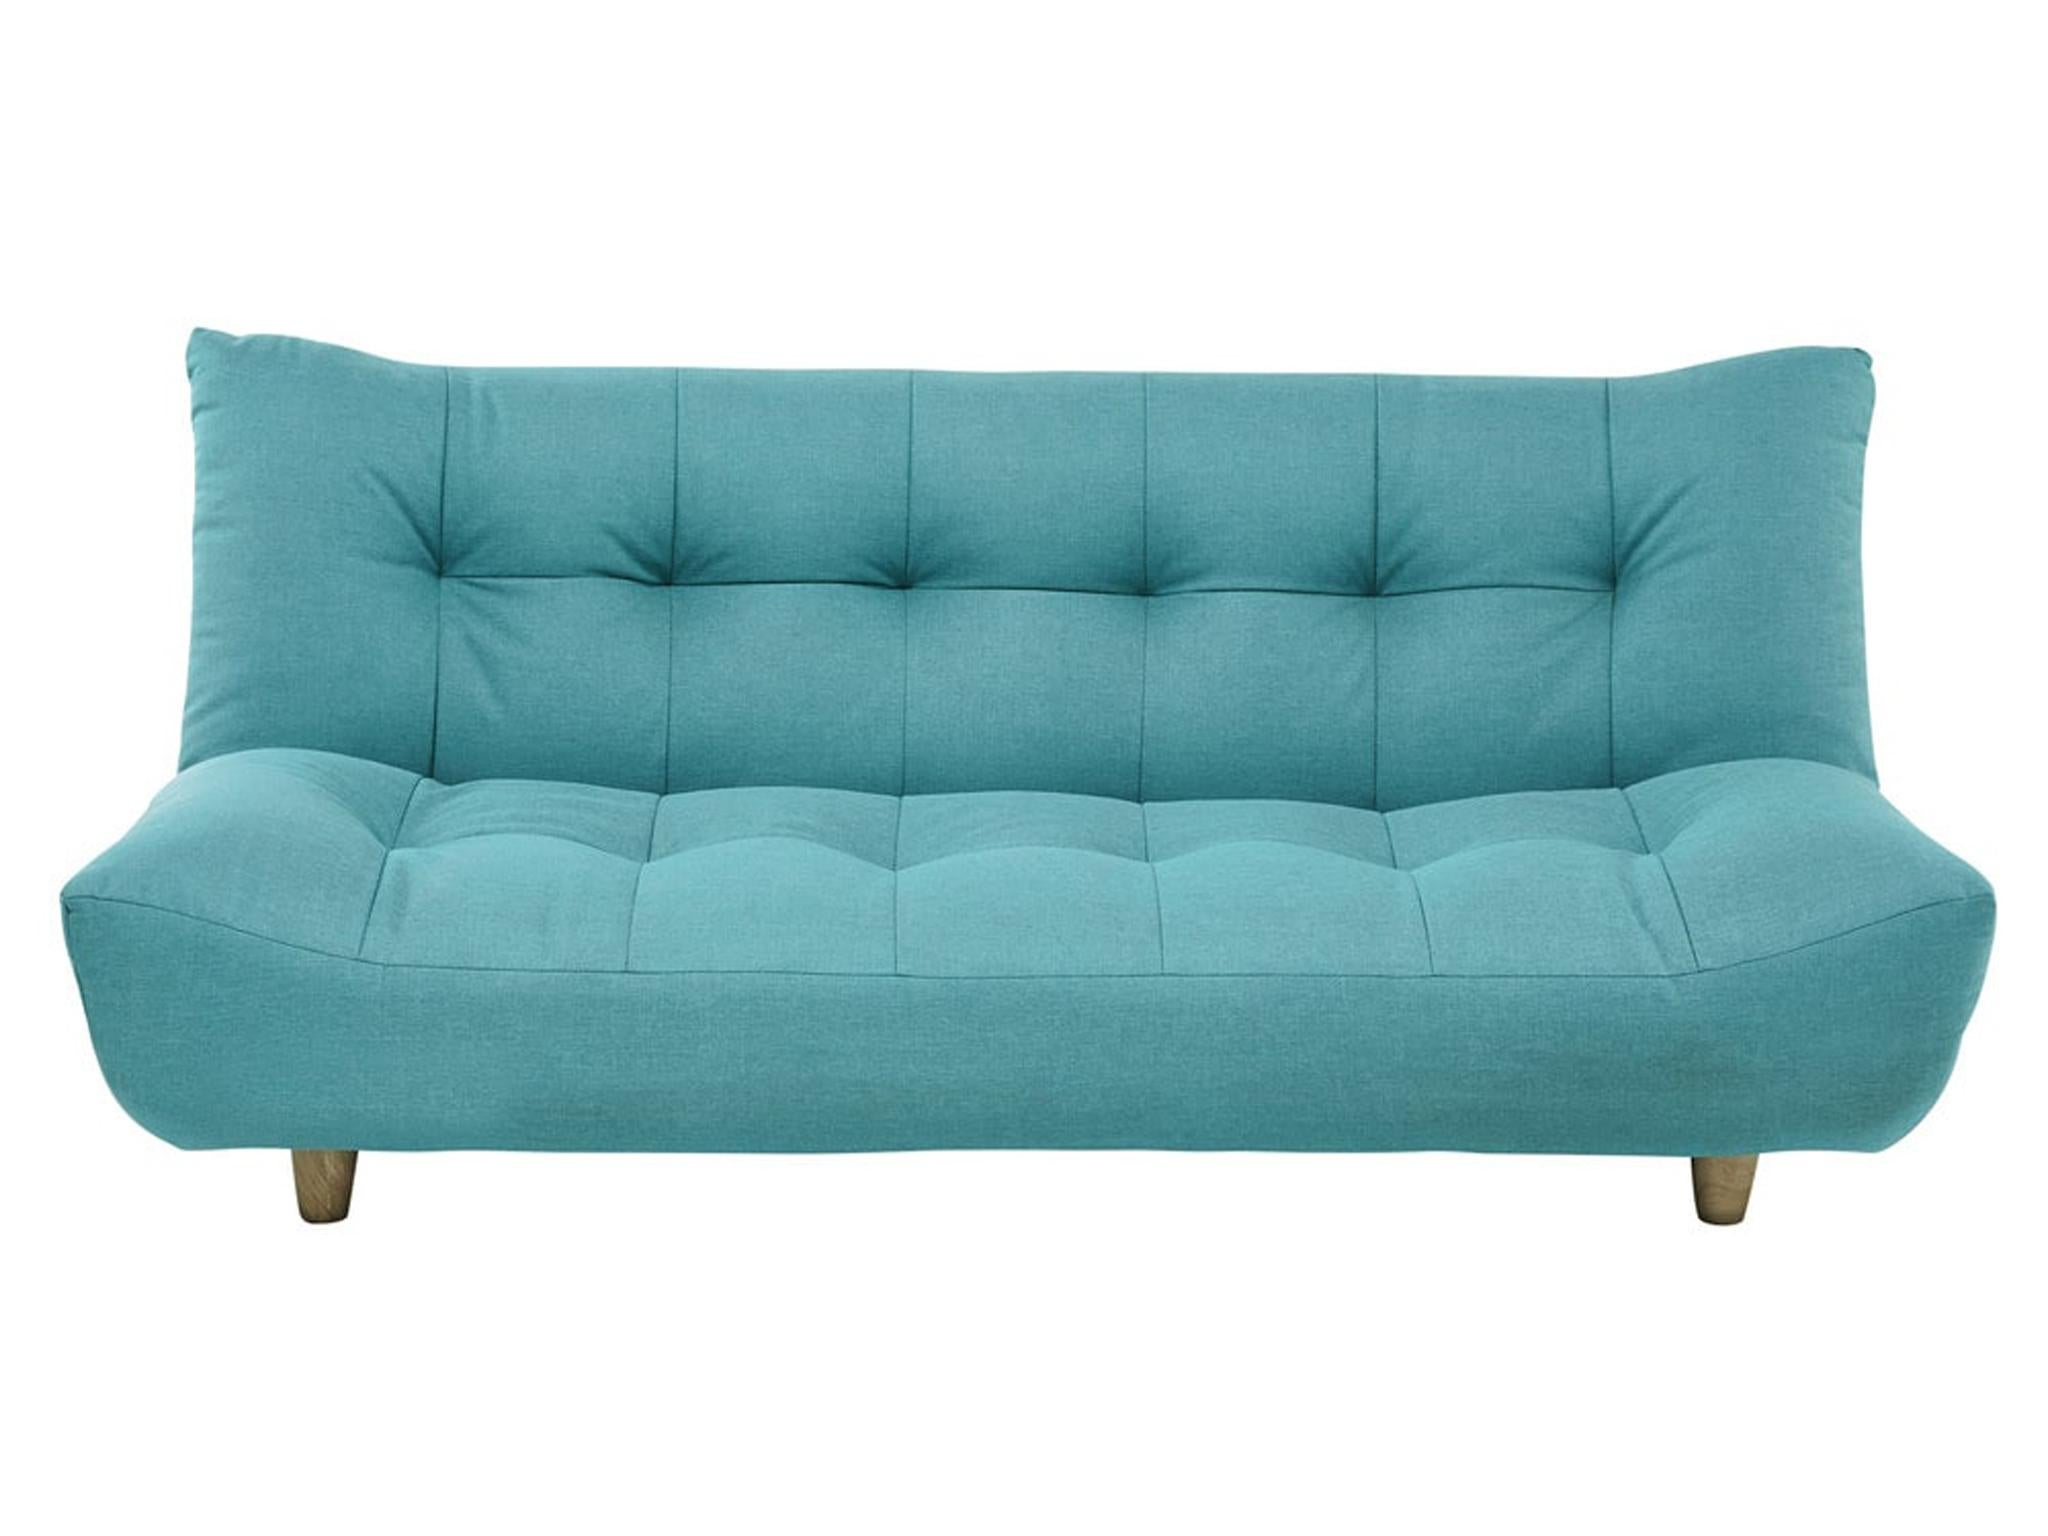 12 Best Sofa Beds The Independent